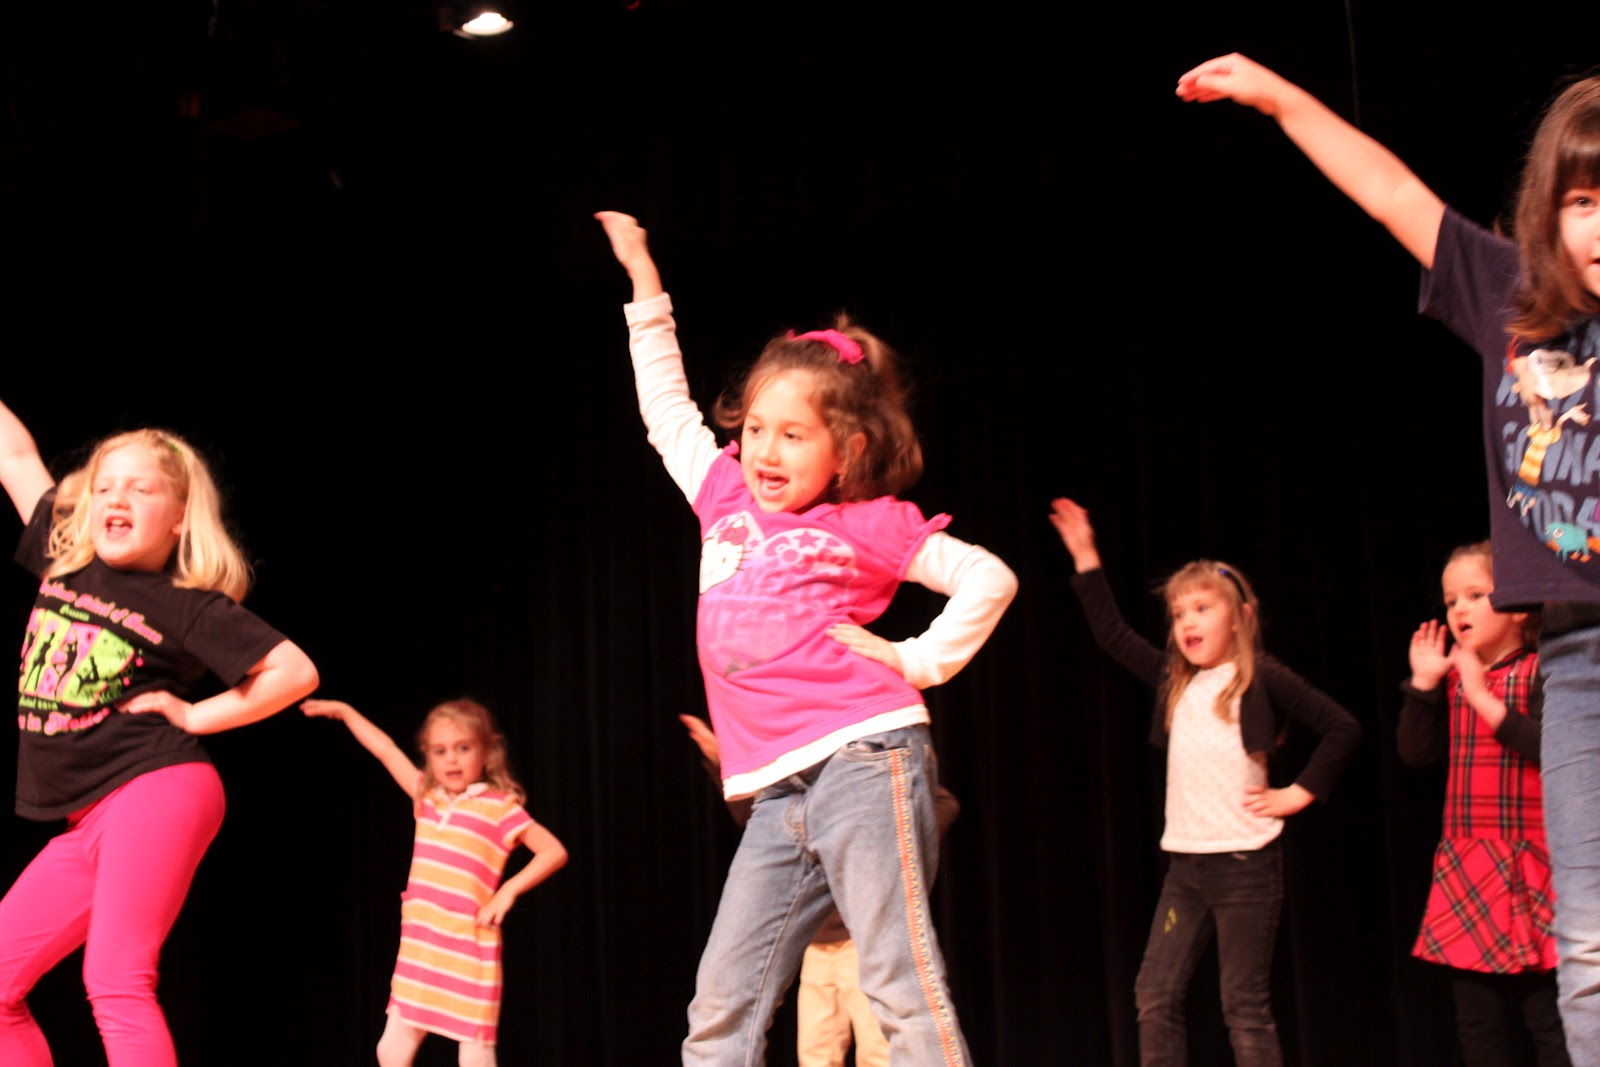 The Dance Buzz: How To Find Clean Hip Hop Music for Kids